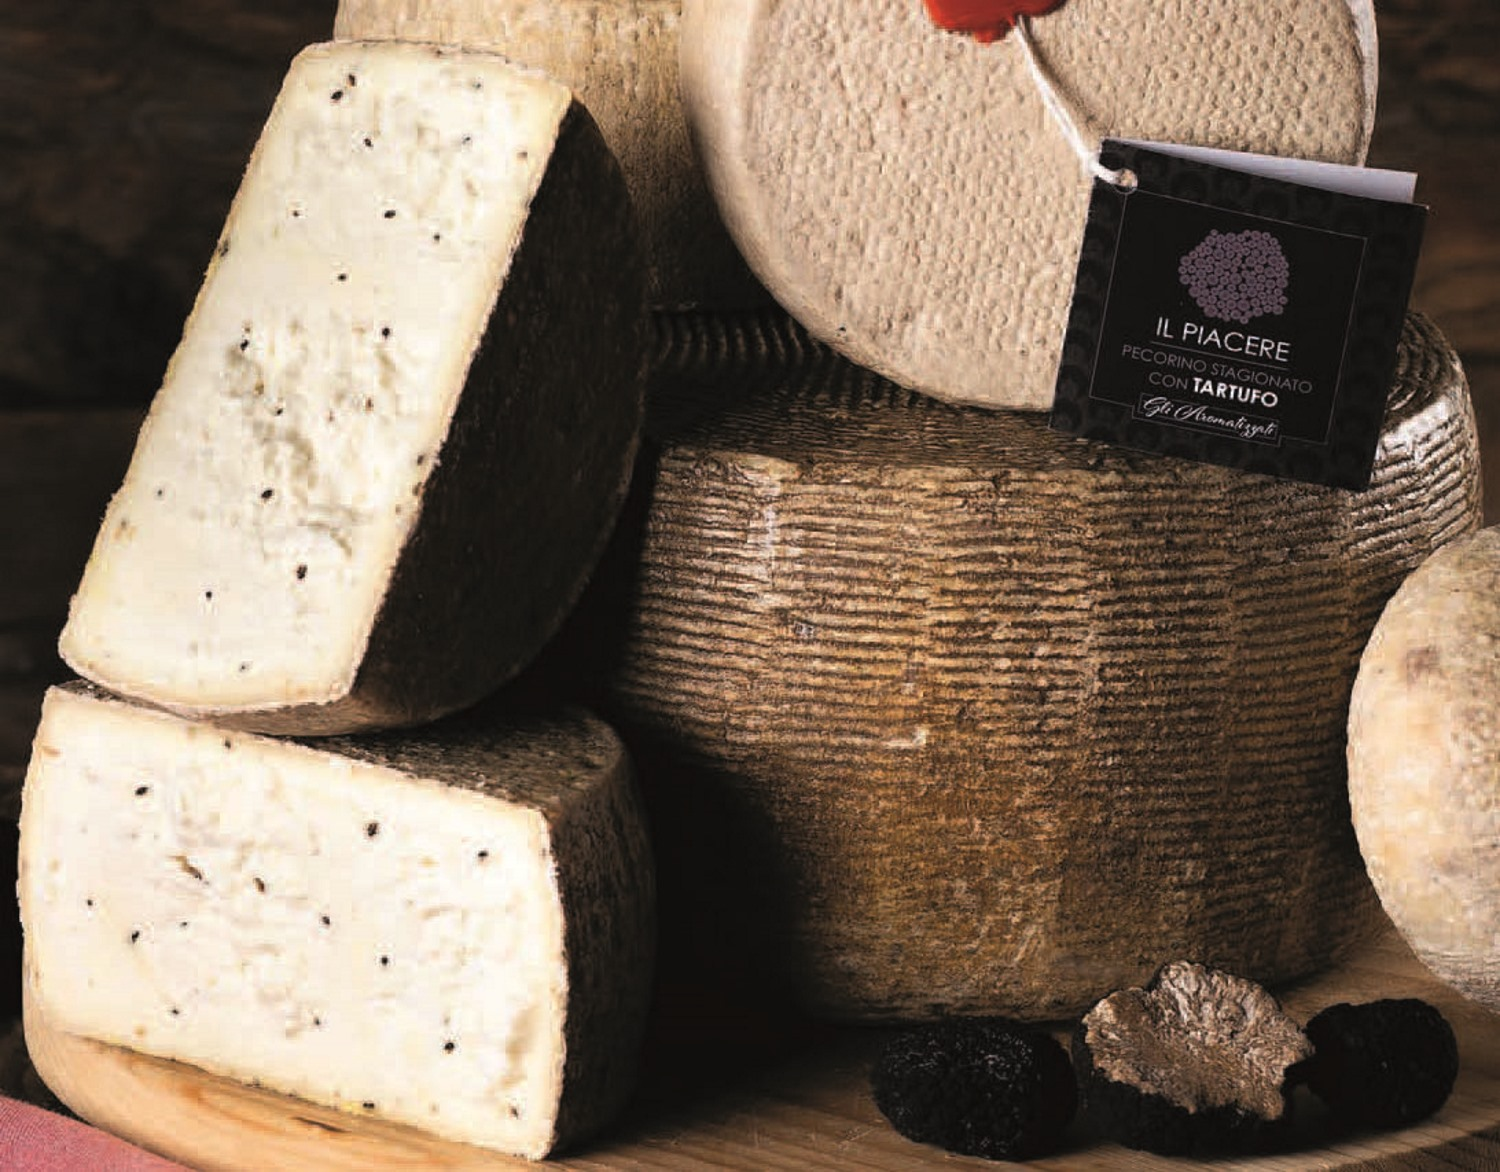 Pecorino cheese with truffle approx. 1.0 kg. - Rocca Toscana Formaggi